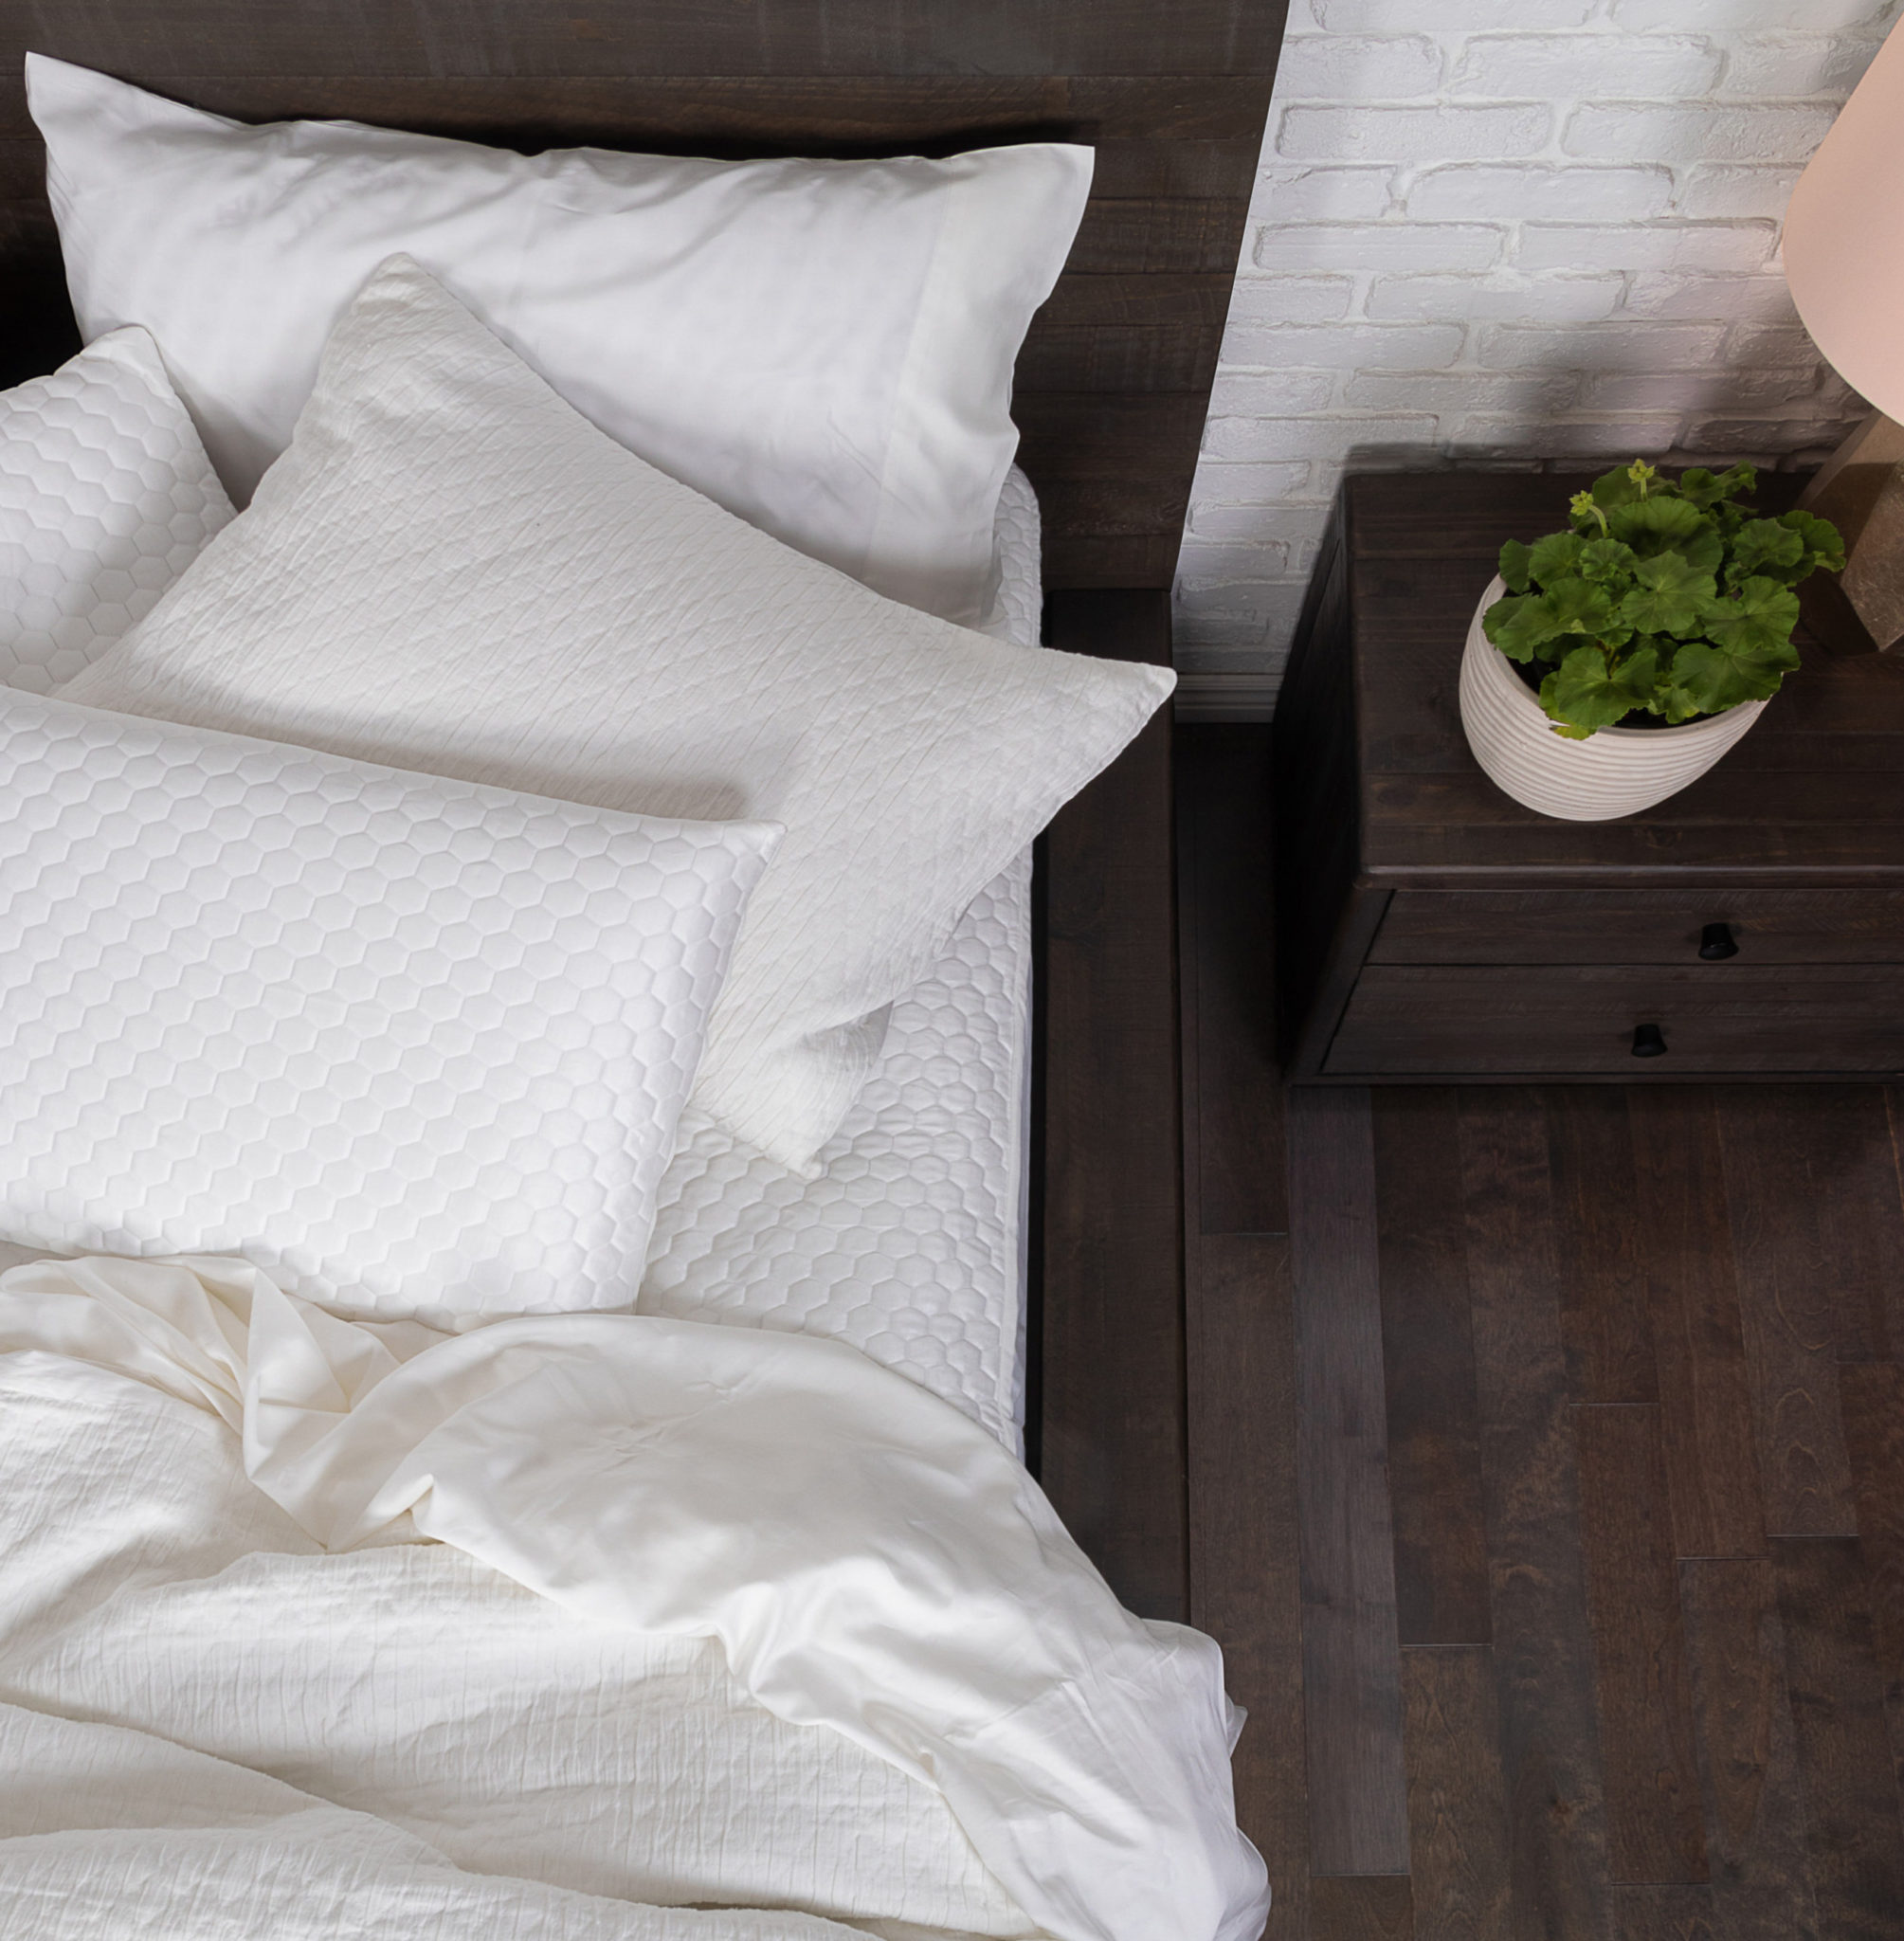 keep your mattress clean with a mattress protector